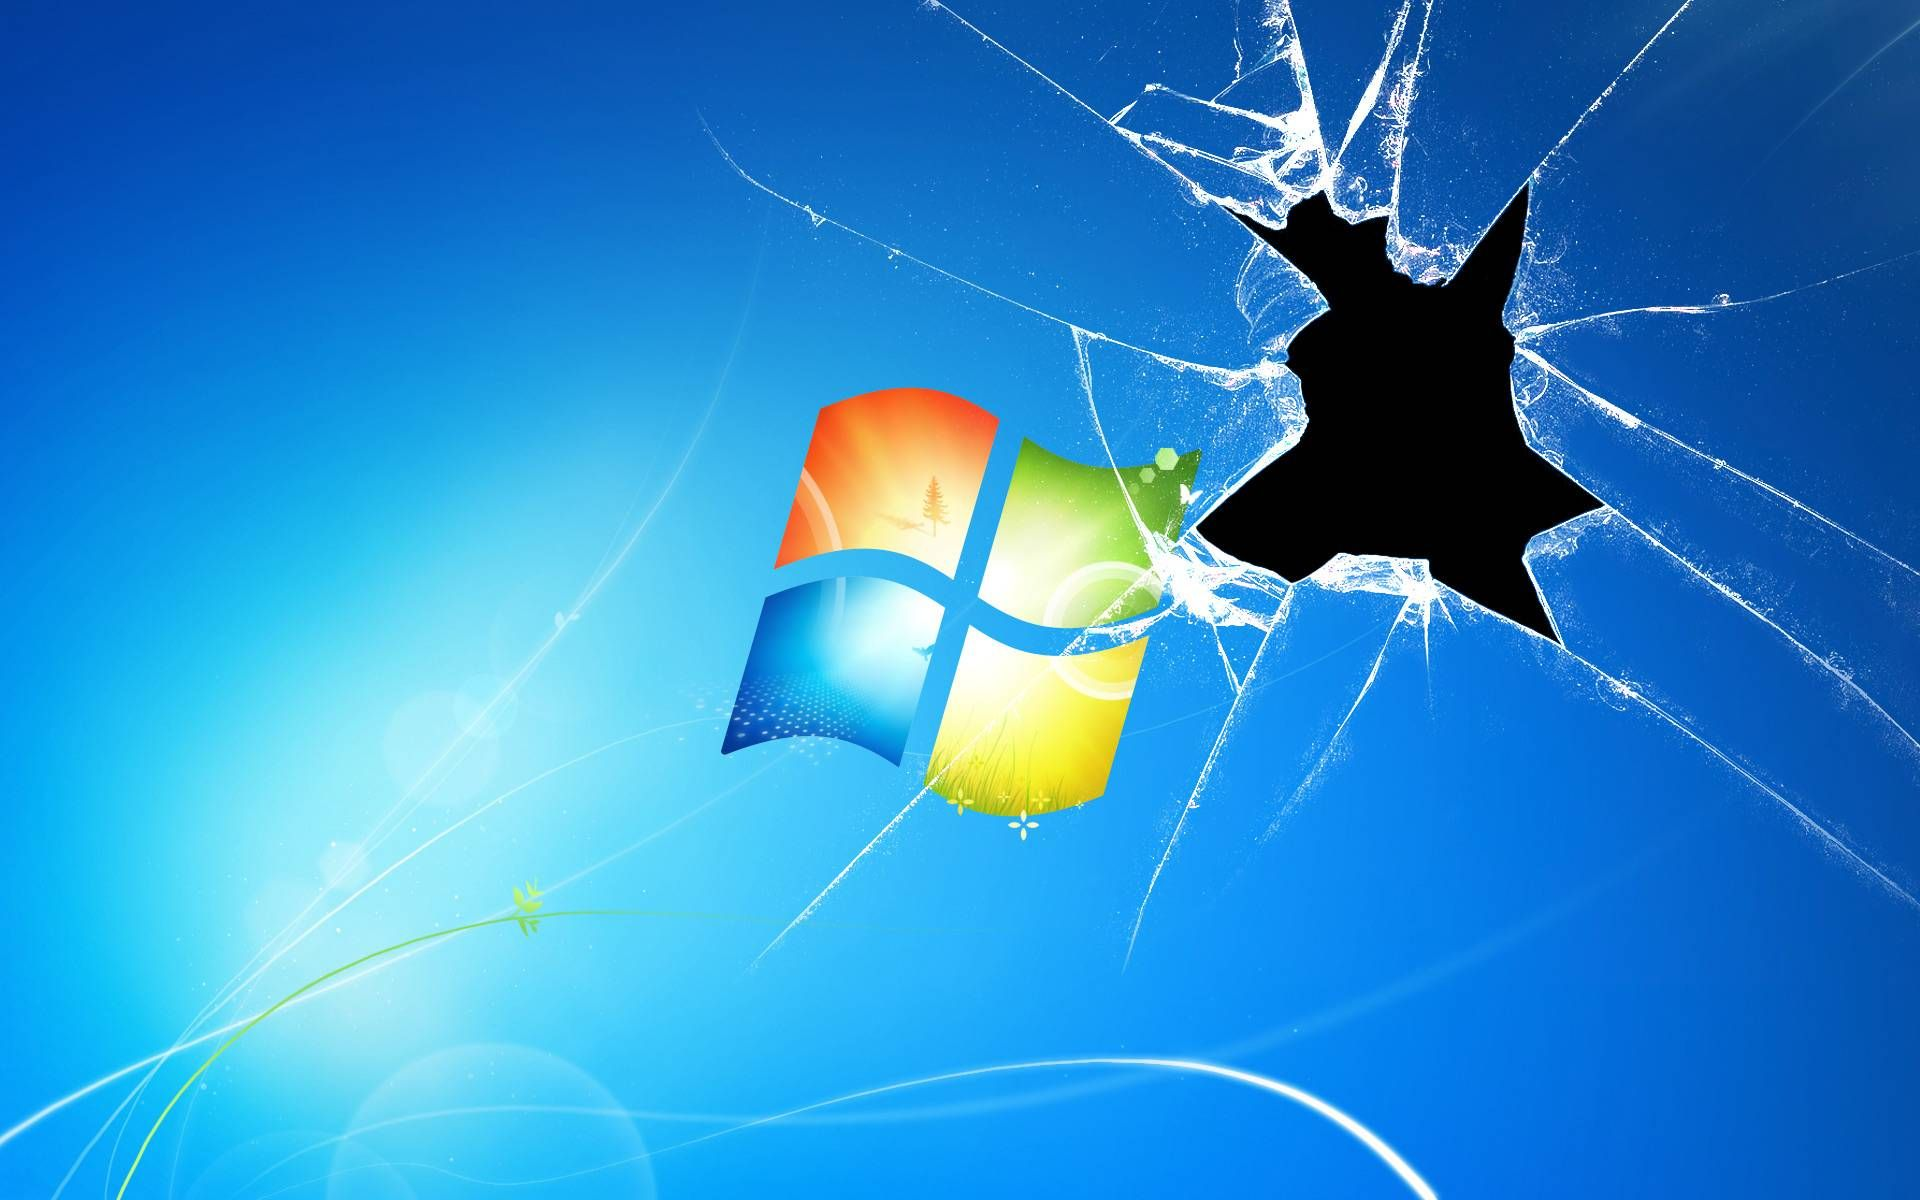 Cracked Screen Windows Exclusive HD Wallpapers 2261 Wallpapers